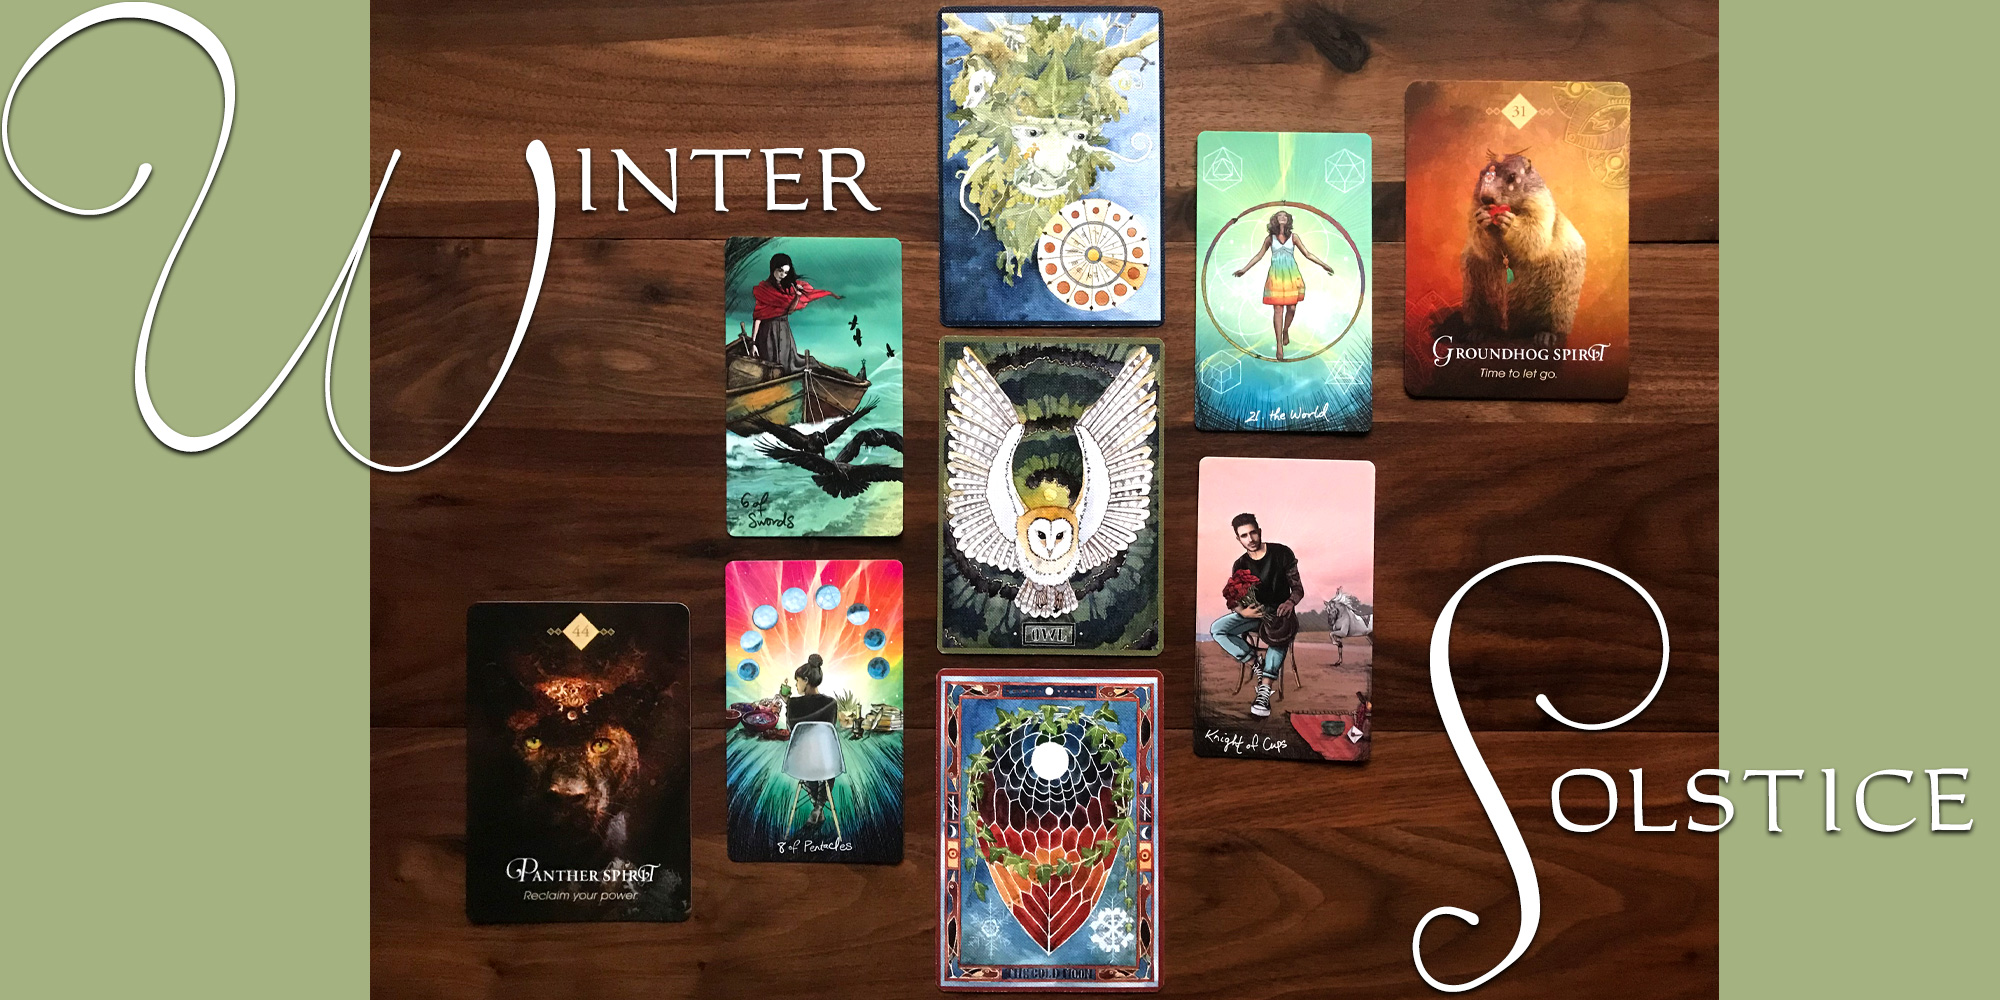 Winter Solstice Tarot Reading - Light Seer's Tarot, The Green Wheel Oracle, The Spirit Animal Oracle